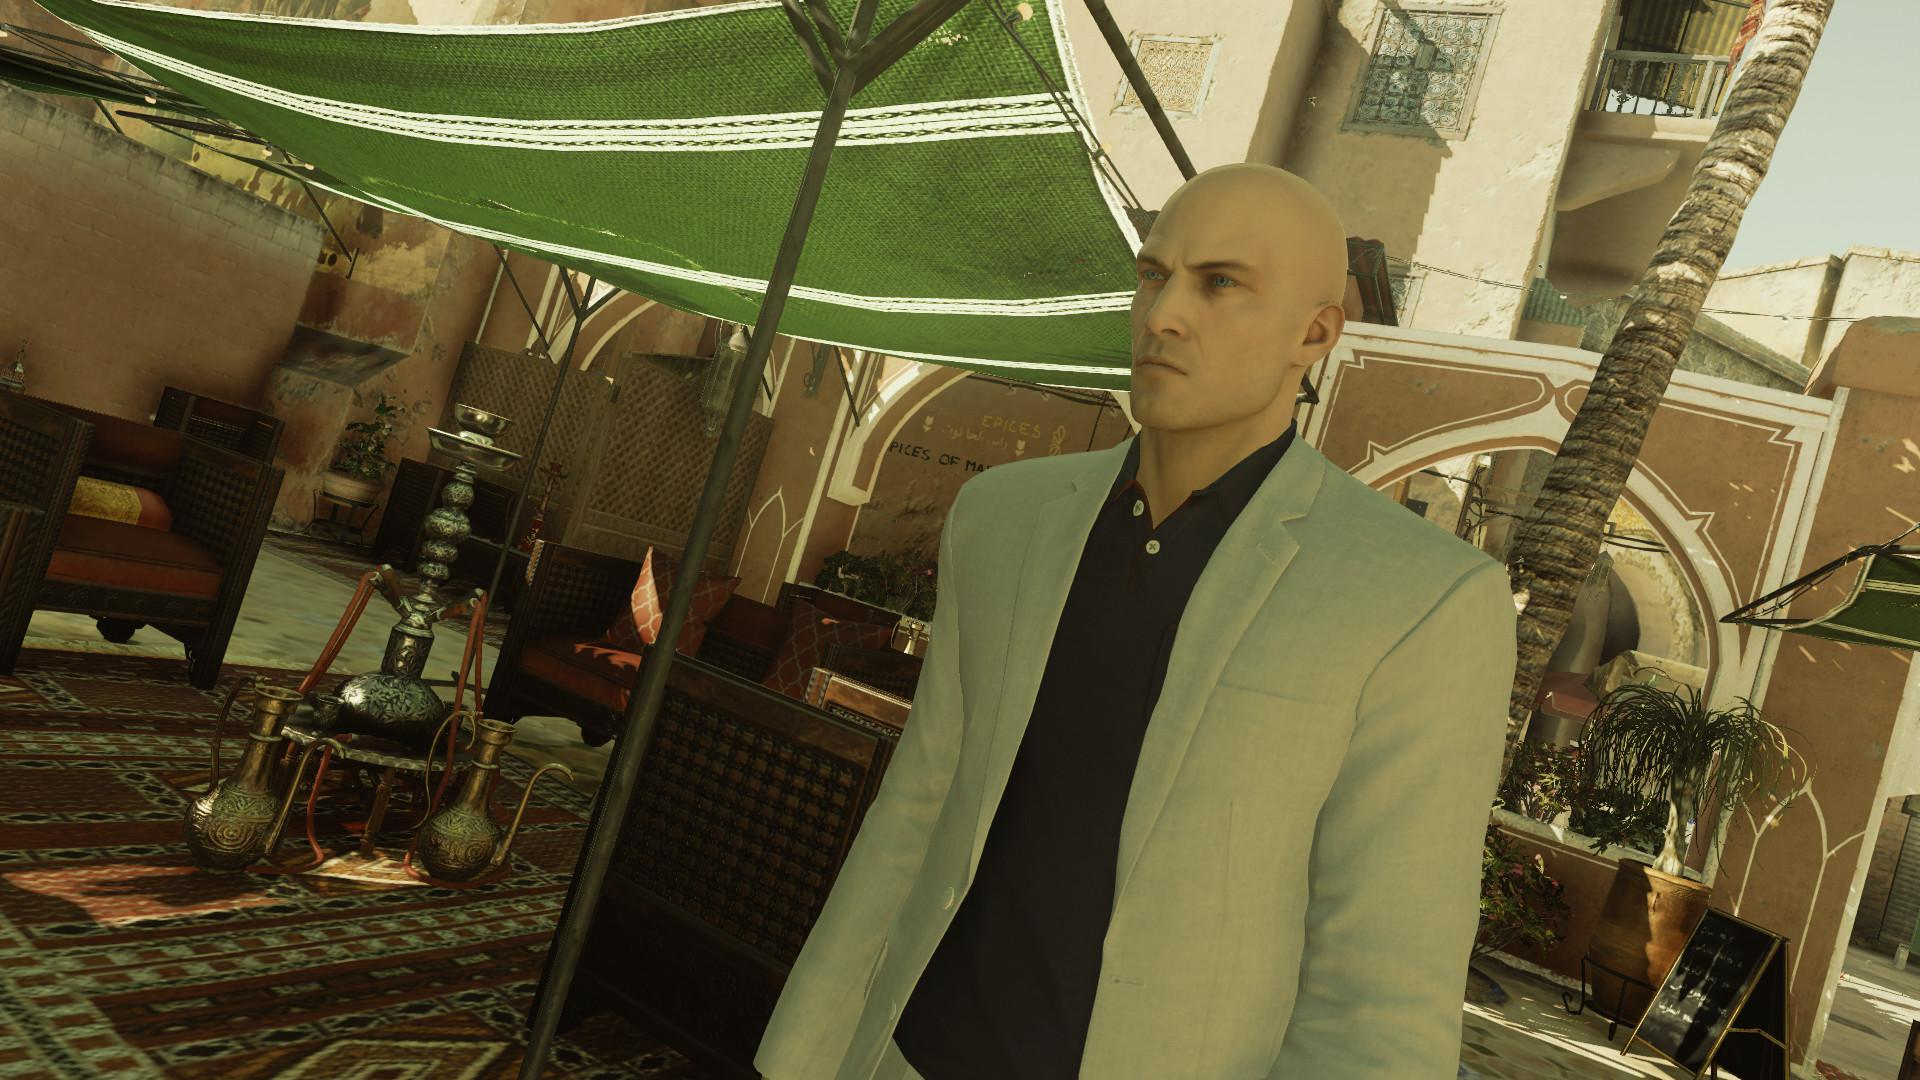 hitman-episode-3-marrakesh-cd-key-4198-3